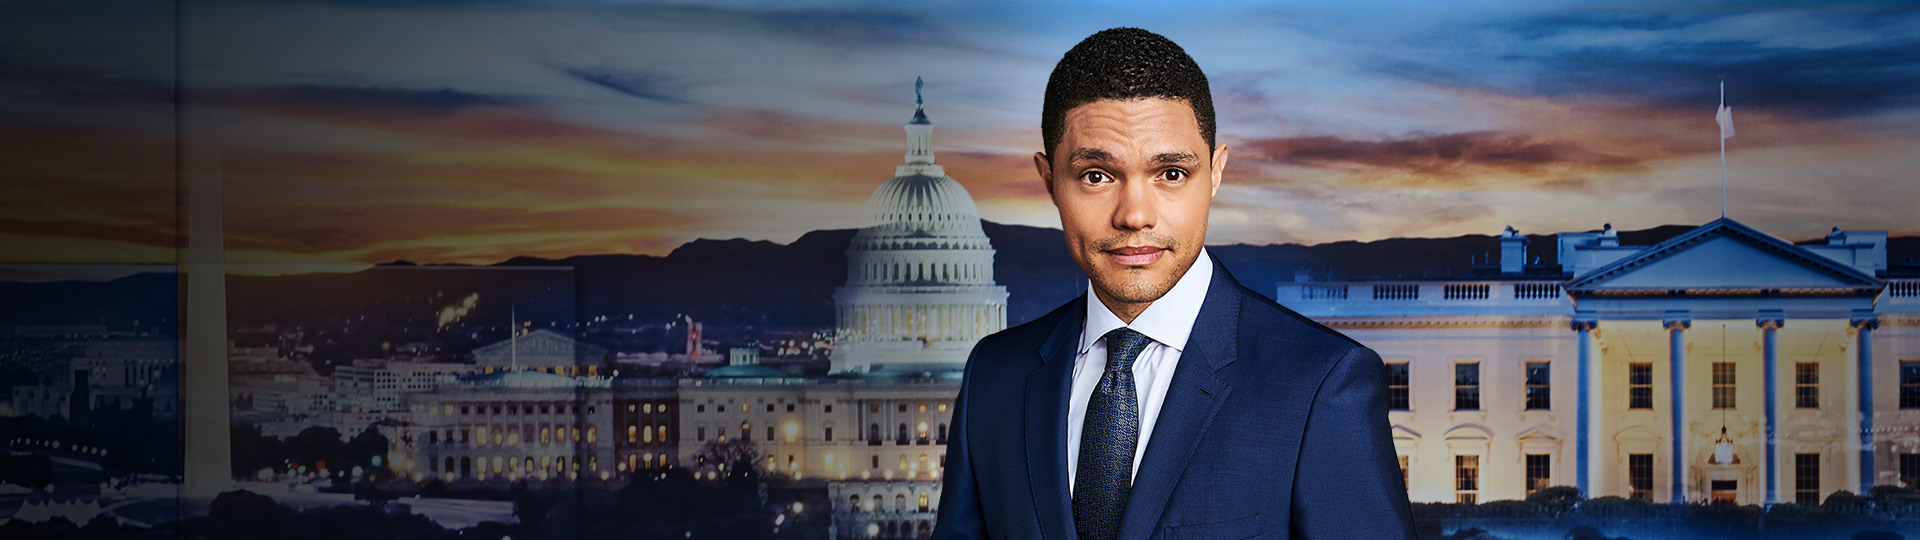 the daily show full episodes free